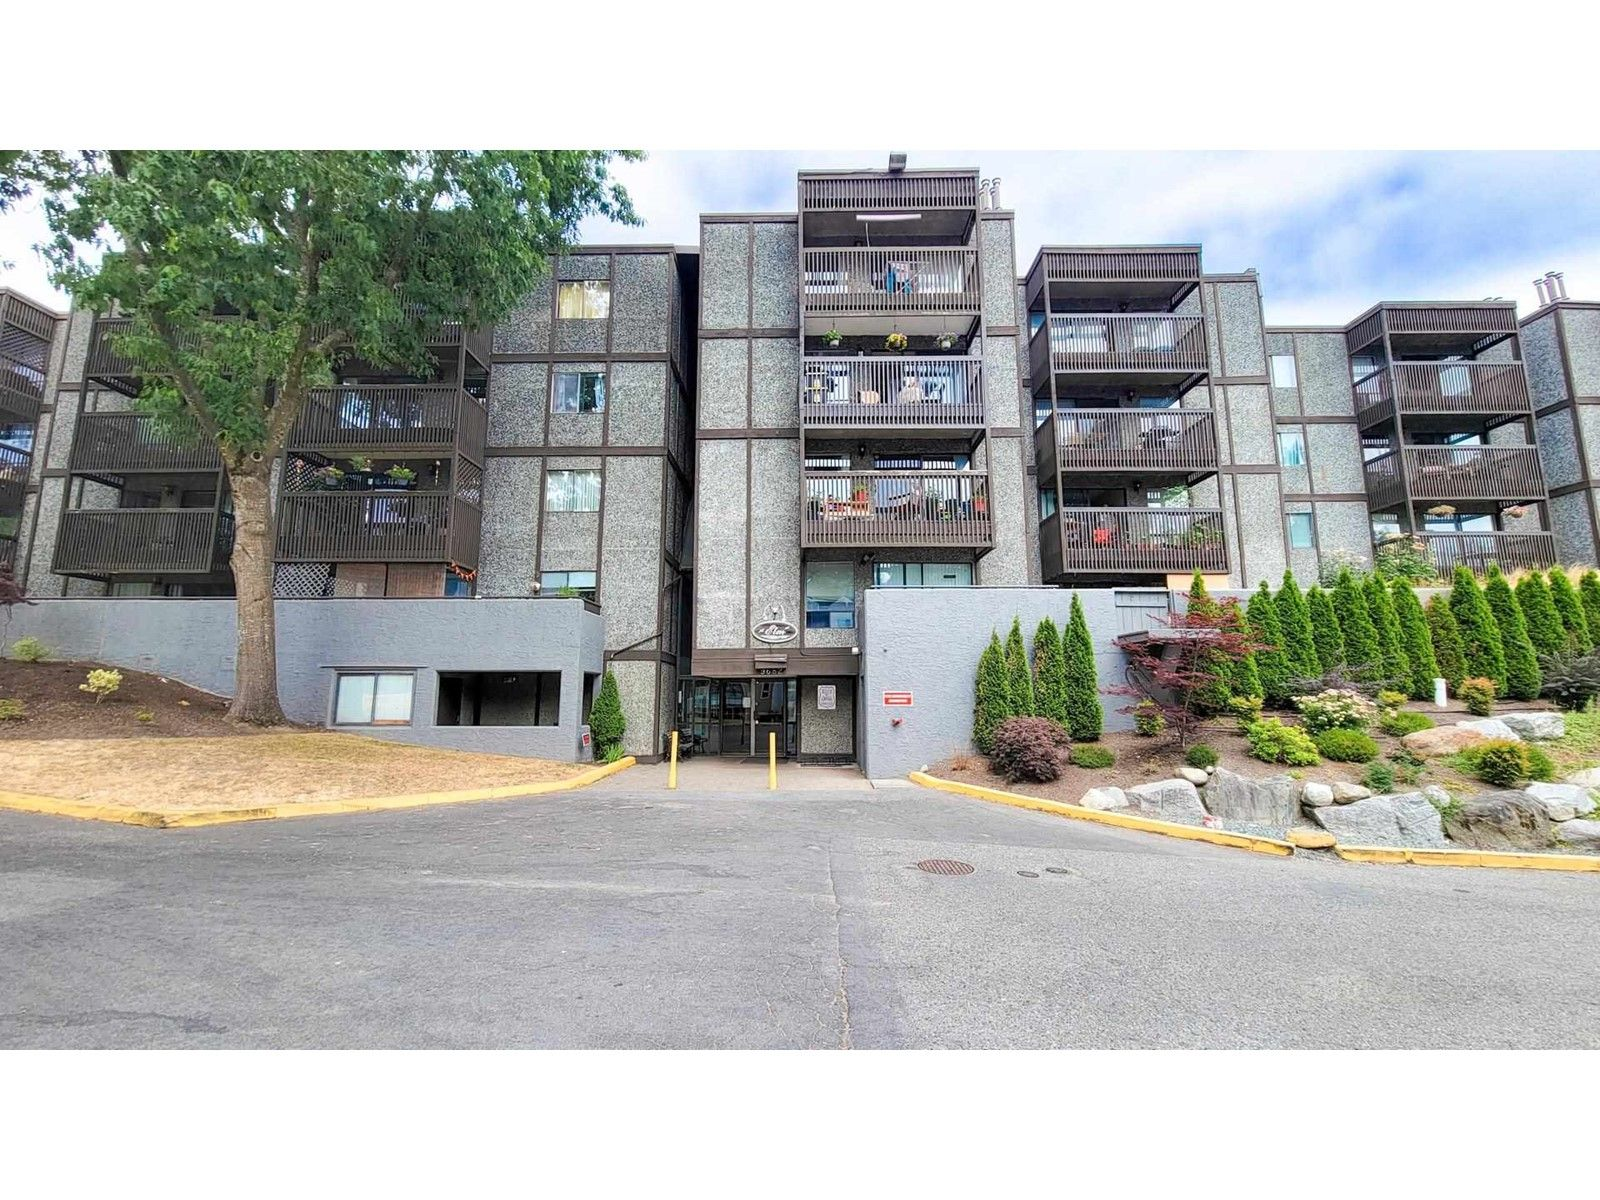 Main Photo: 213 9682 134 STREET in SURREY: House for sale : MLS®# R2602959